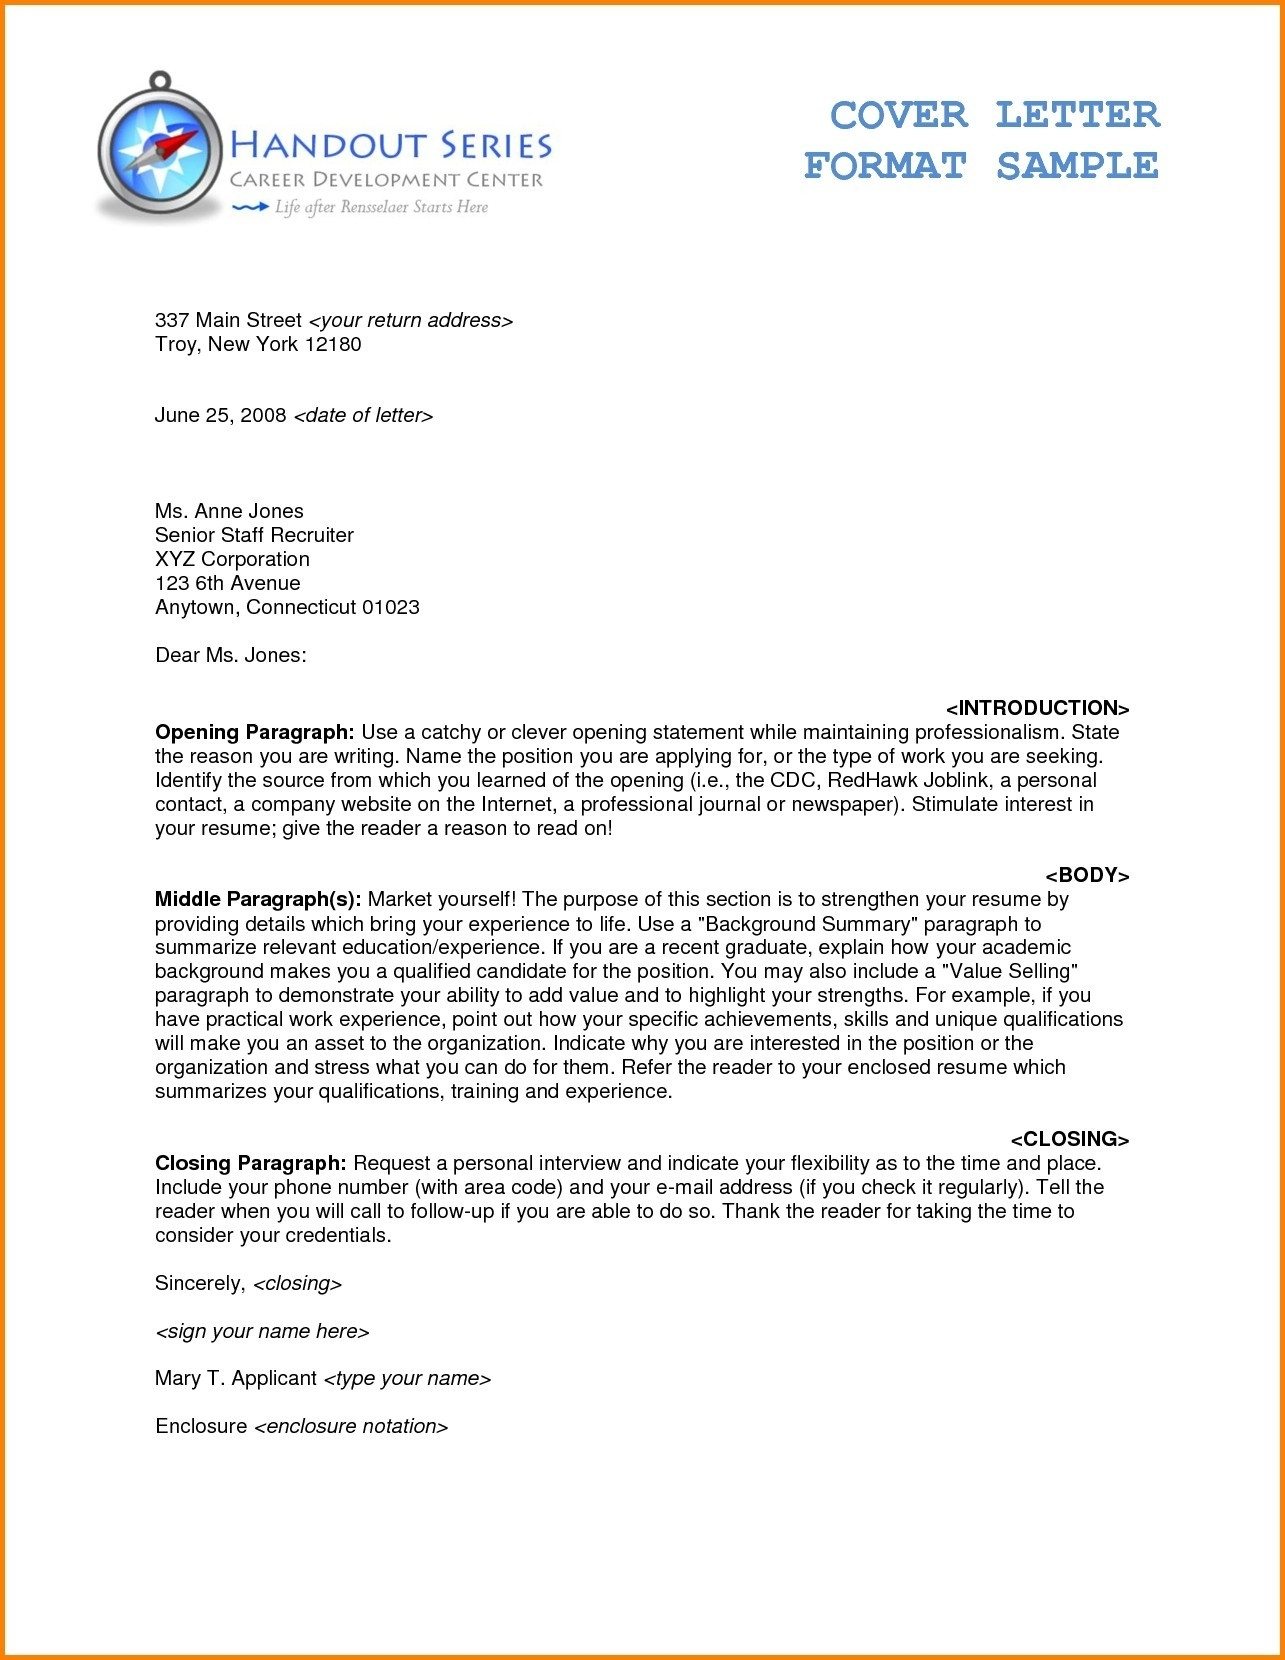 Business letter format enclosure examples and forms quotation letter format in word fresh business letter format regarding business letter format enclosure 20098 altavistaventures